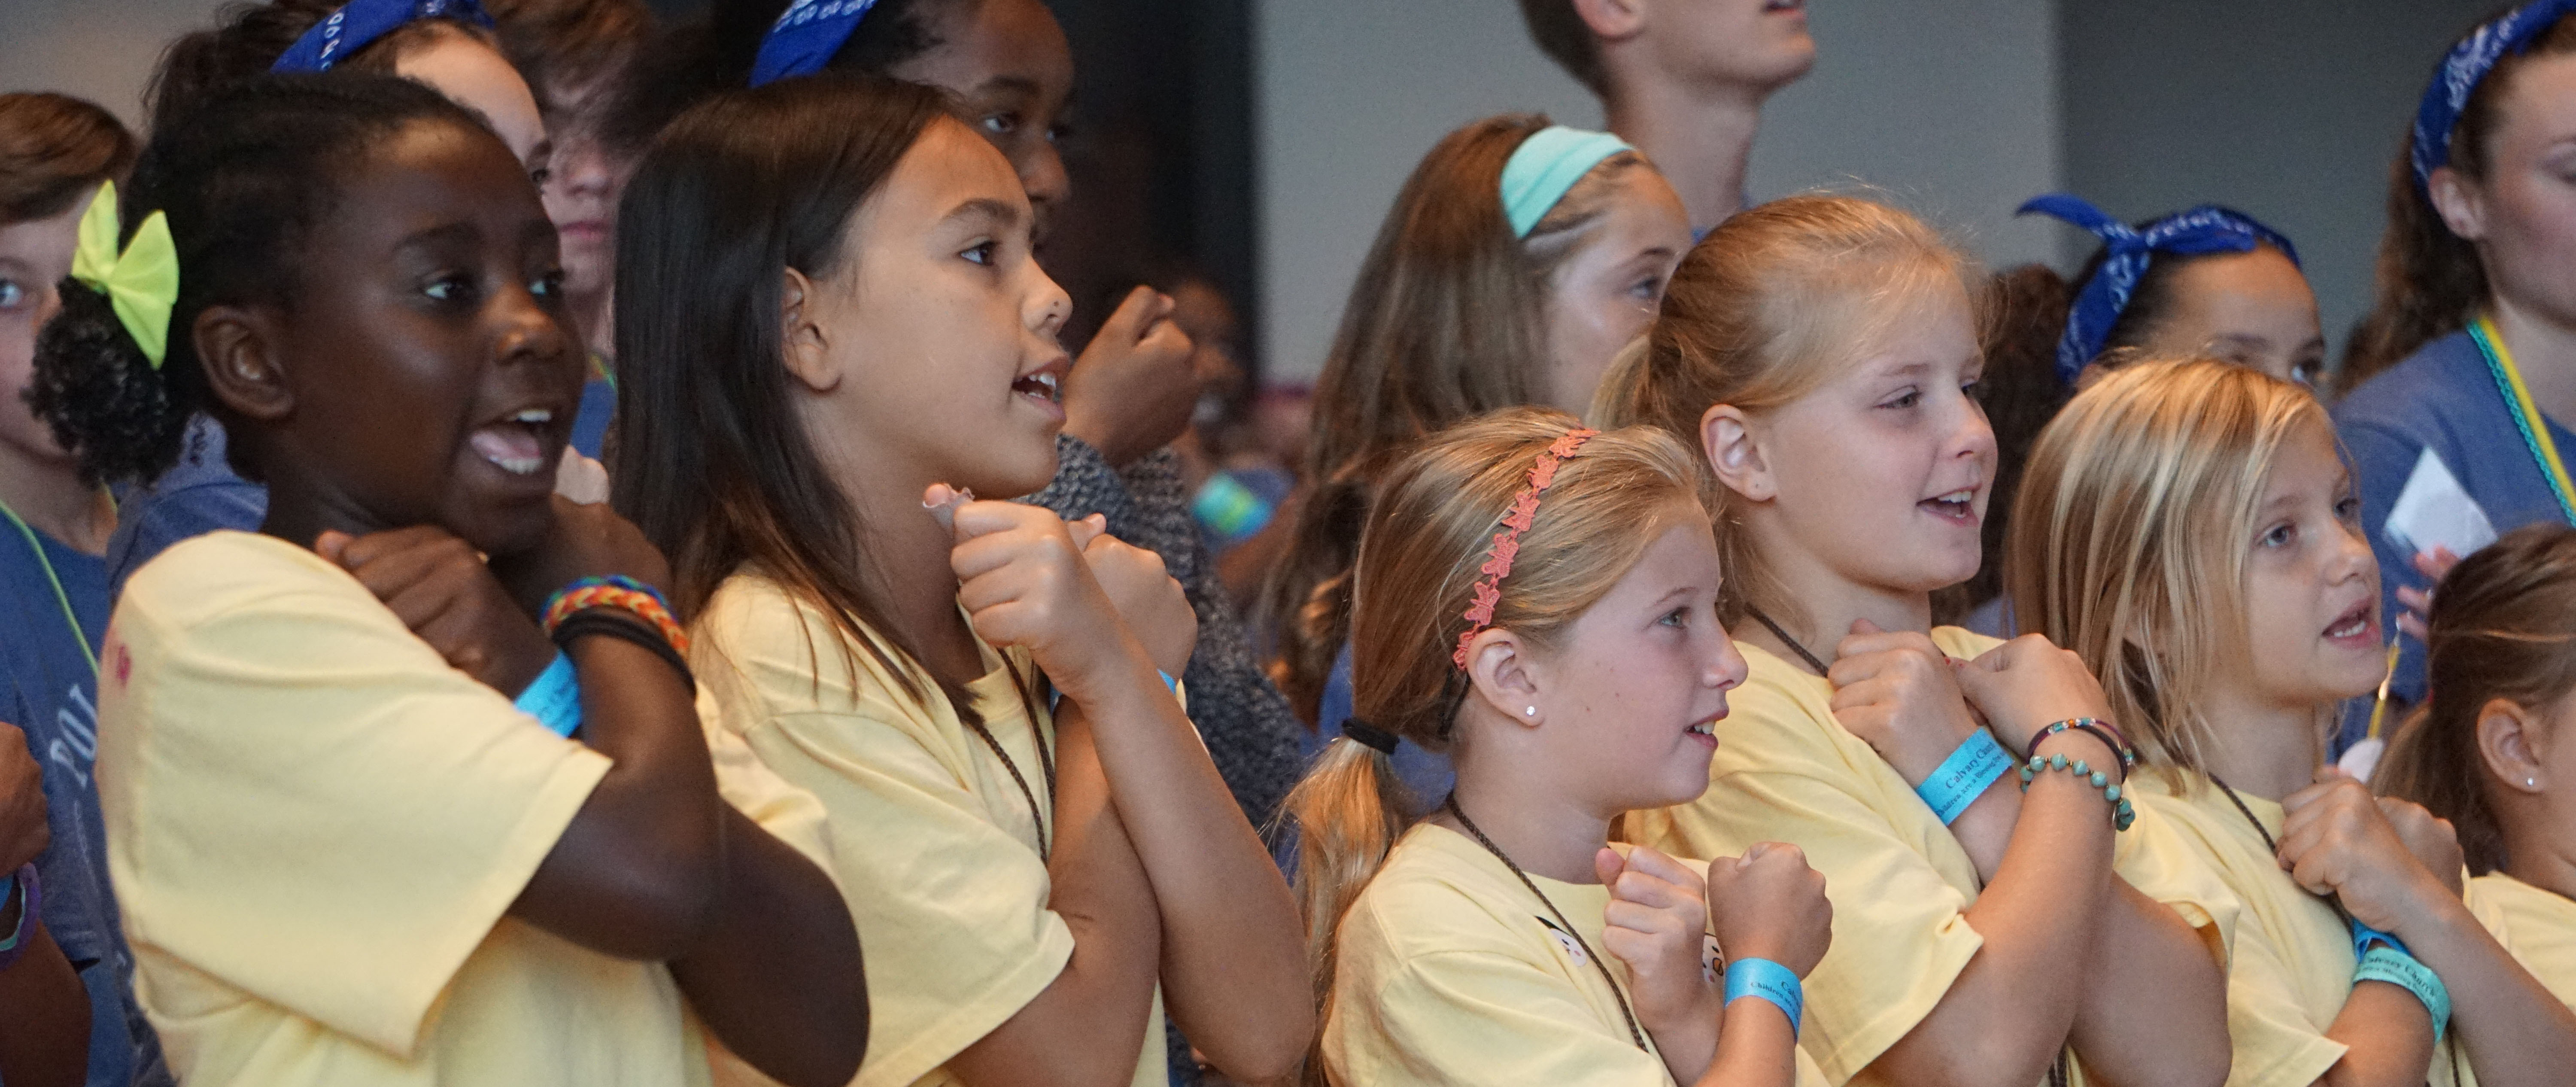 We love kids at Calvary!